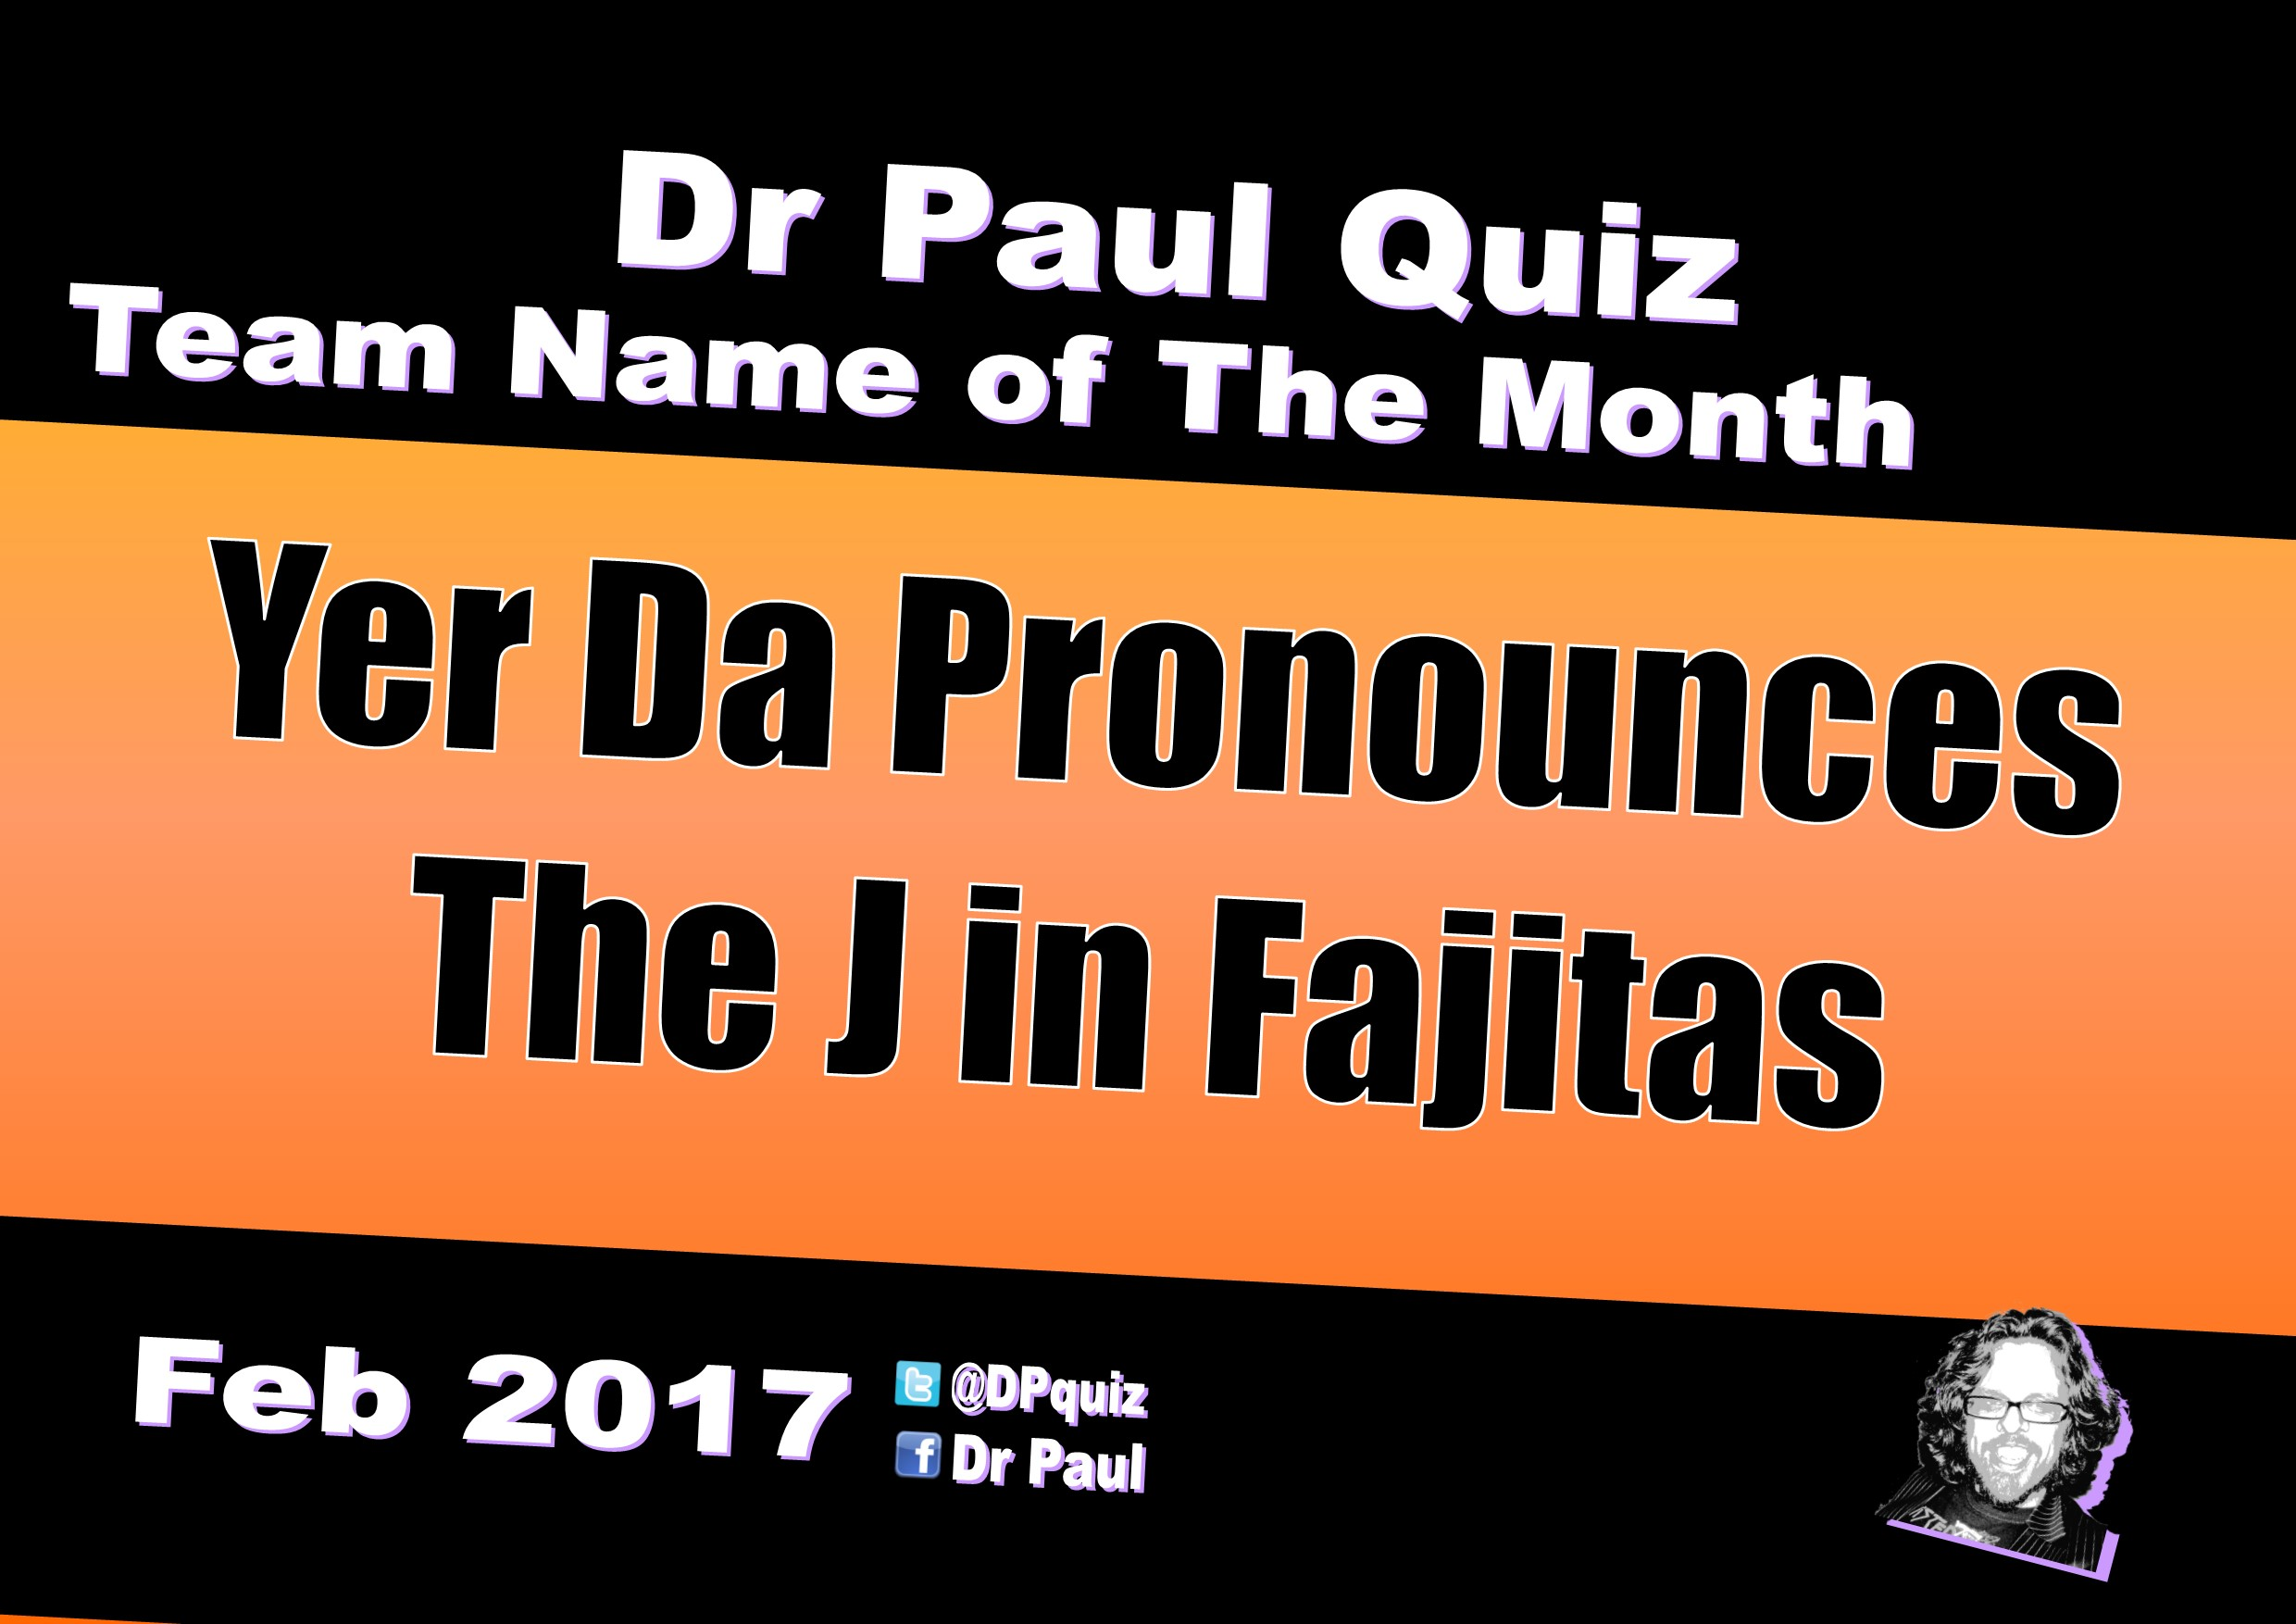 dpquiz team name of the month 2017